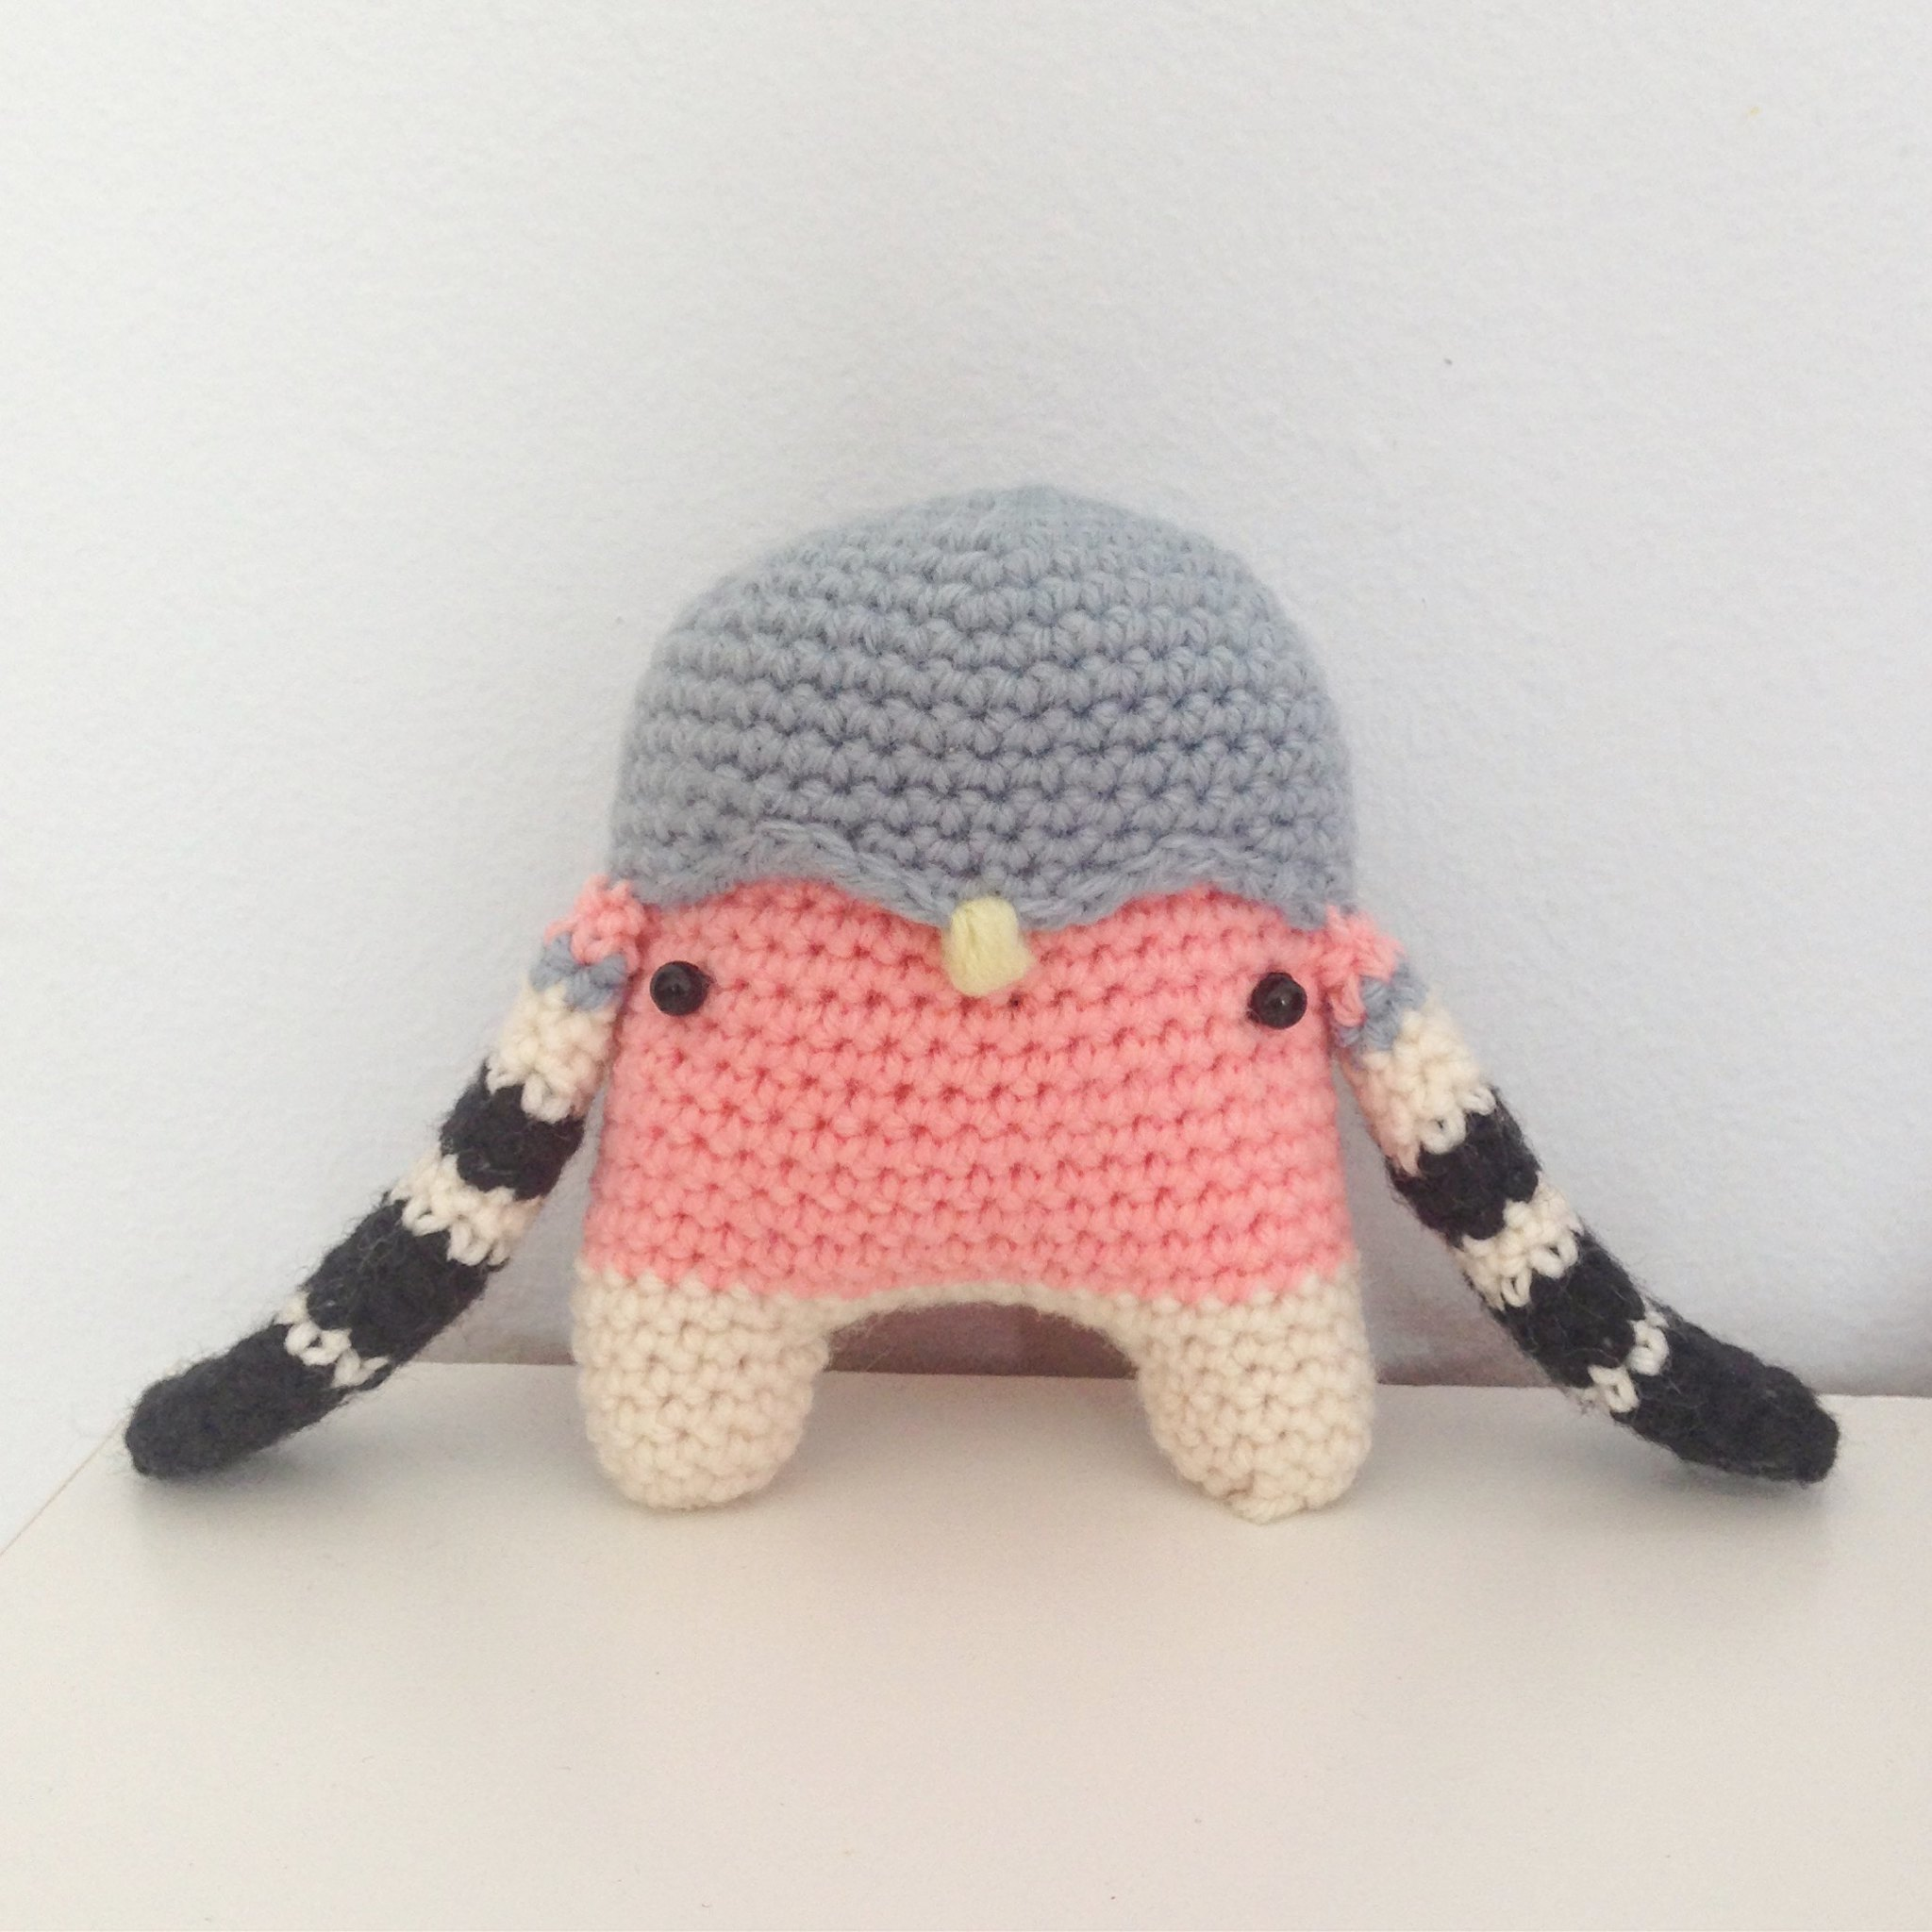 Crocheted chaffinch